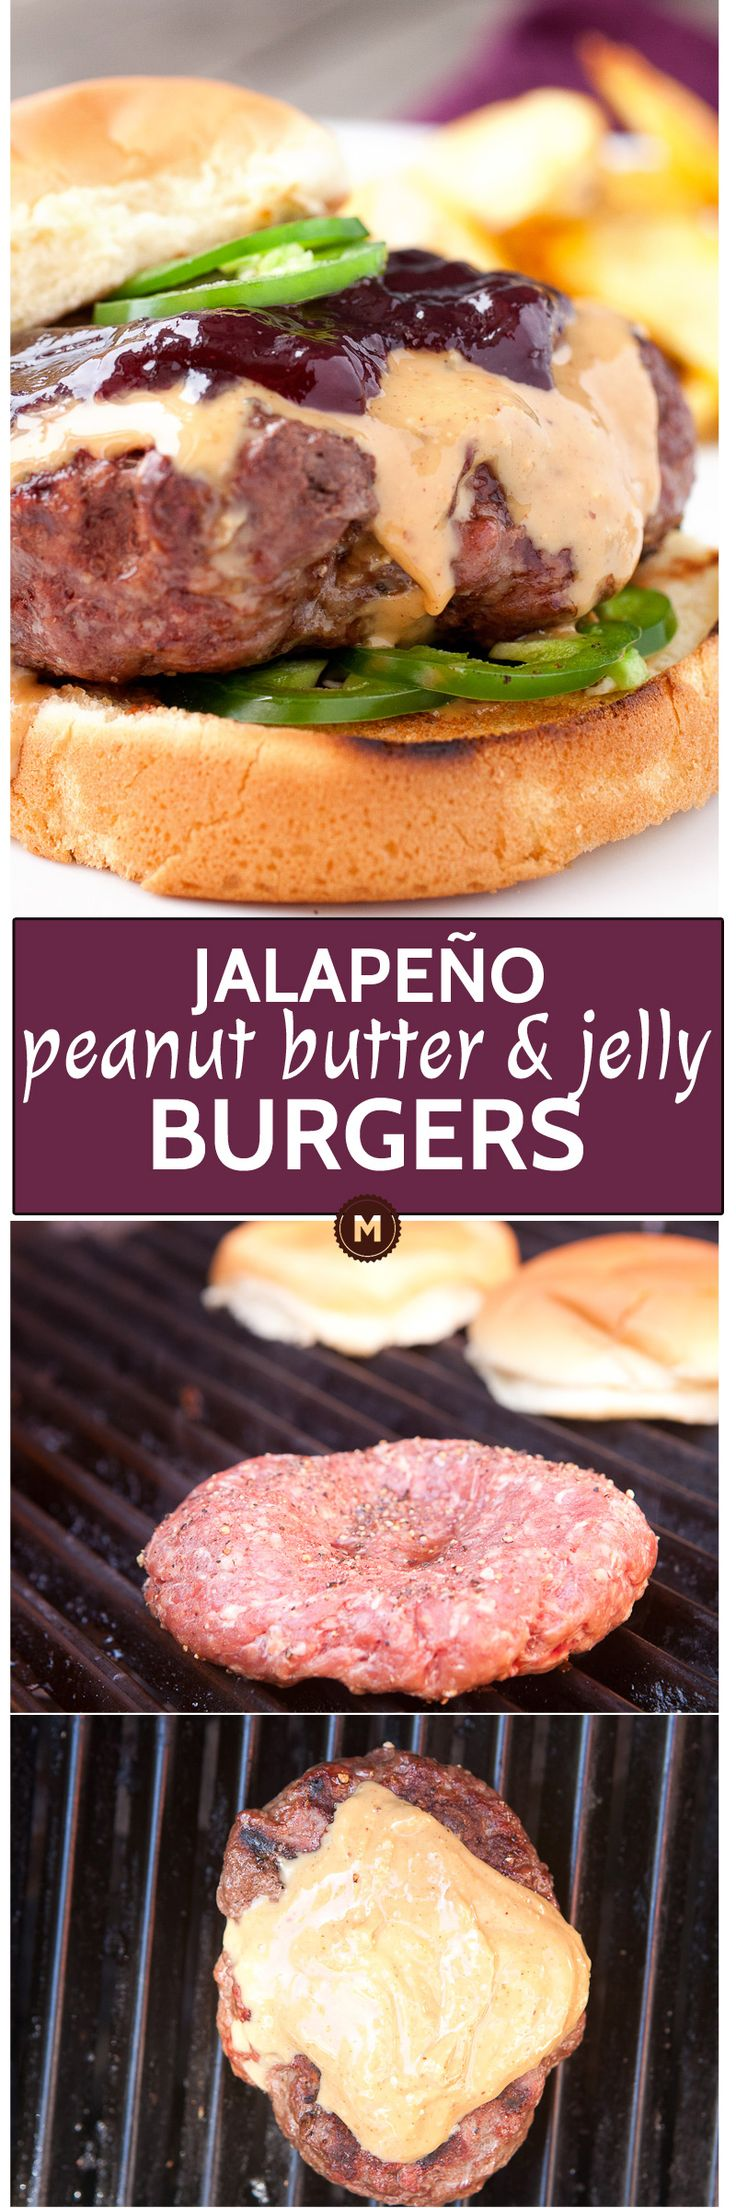 Spicy Peanut Butter & Jelly Burger: This burger topping might sound ridiculous, but I promise it works. Creamy peanut butter, sweet jelly (I like grape), and some fresh jalapenos for crunch and heat. Amazing burger and quick to make! | macheesmo.com